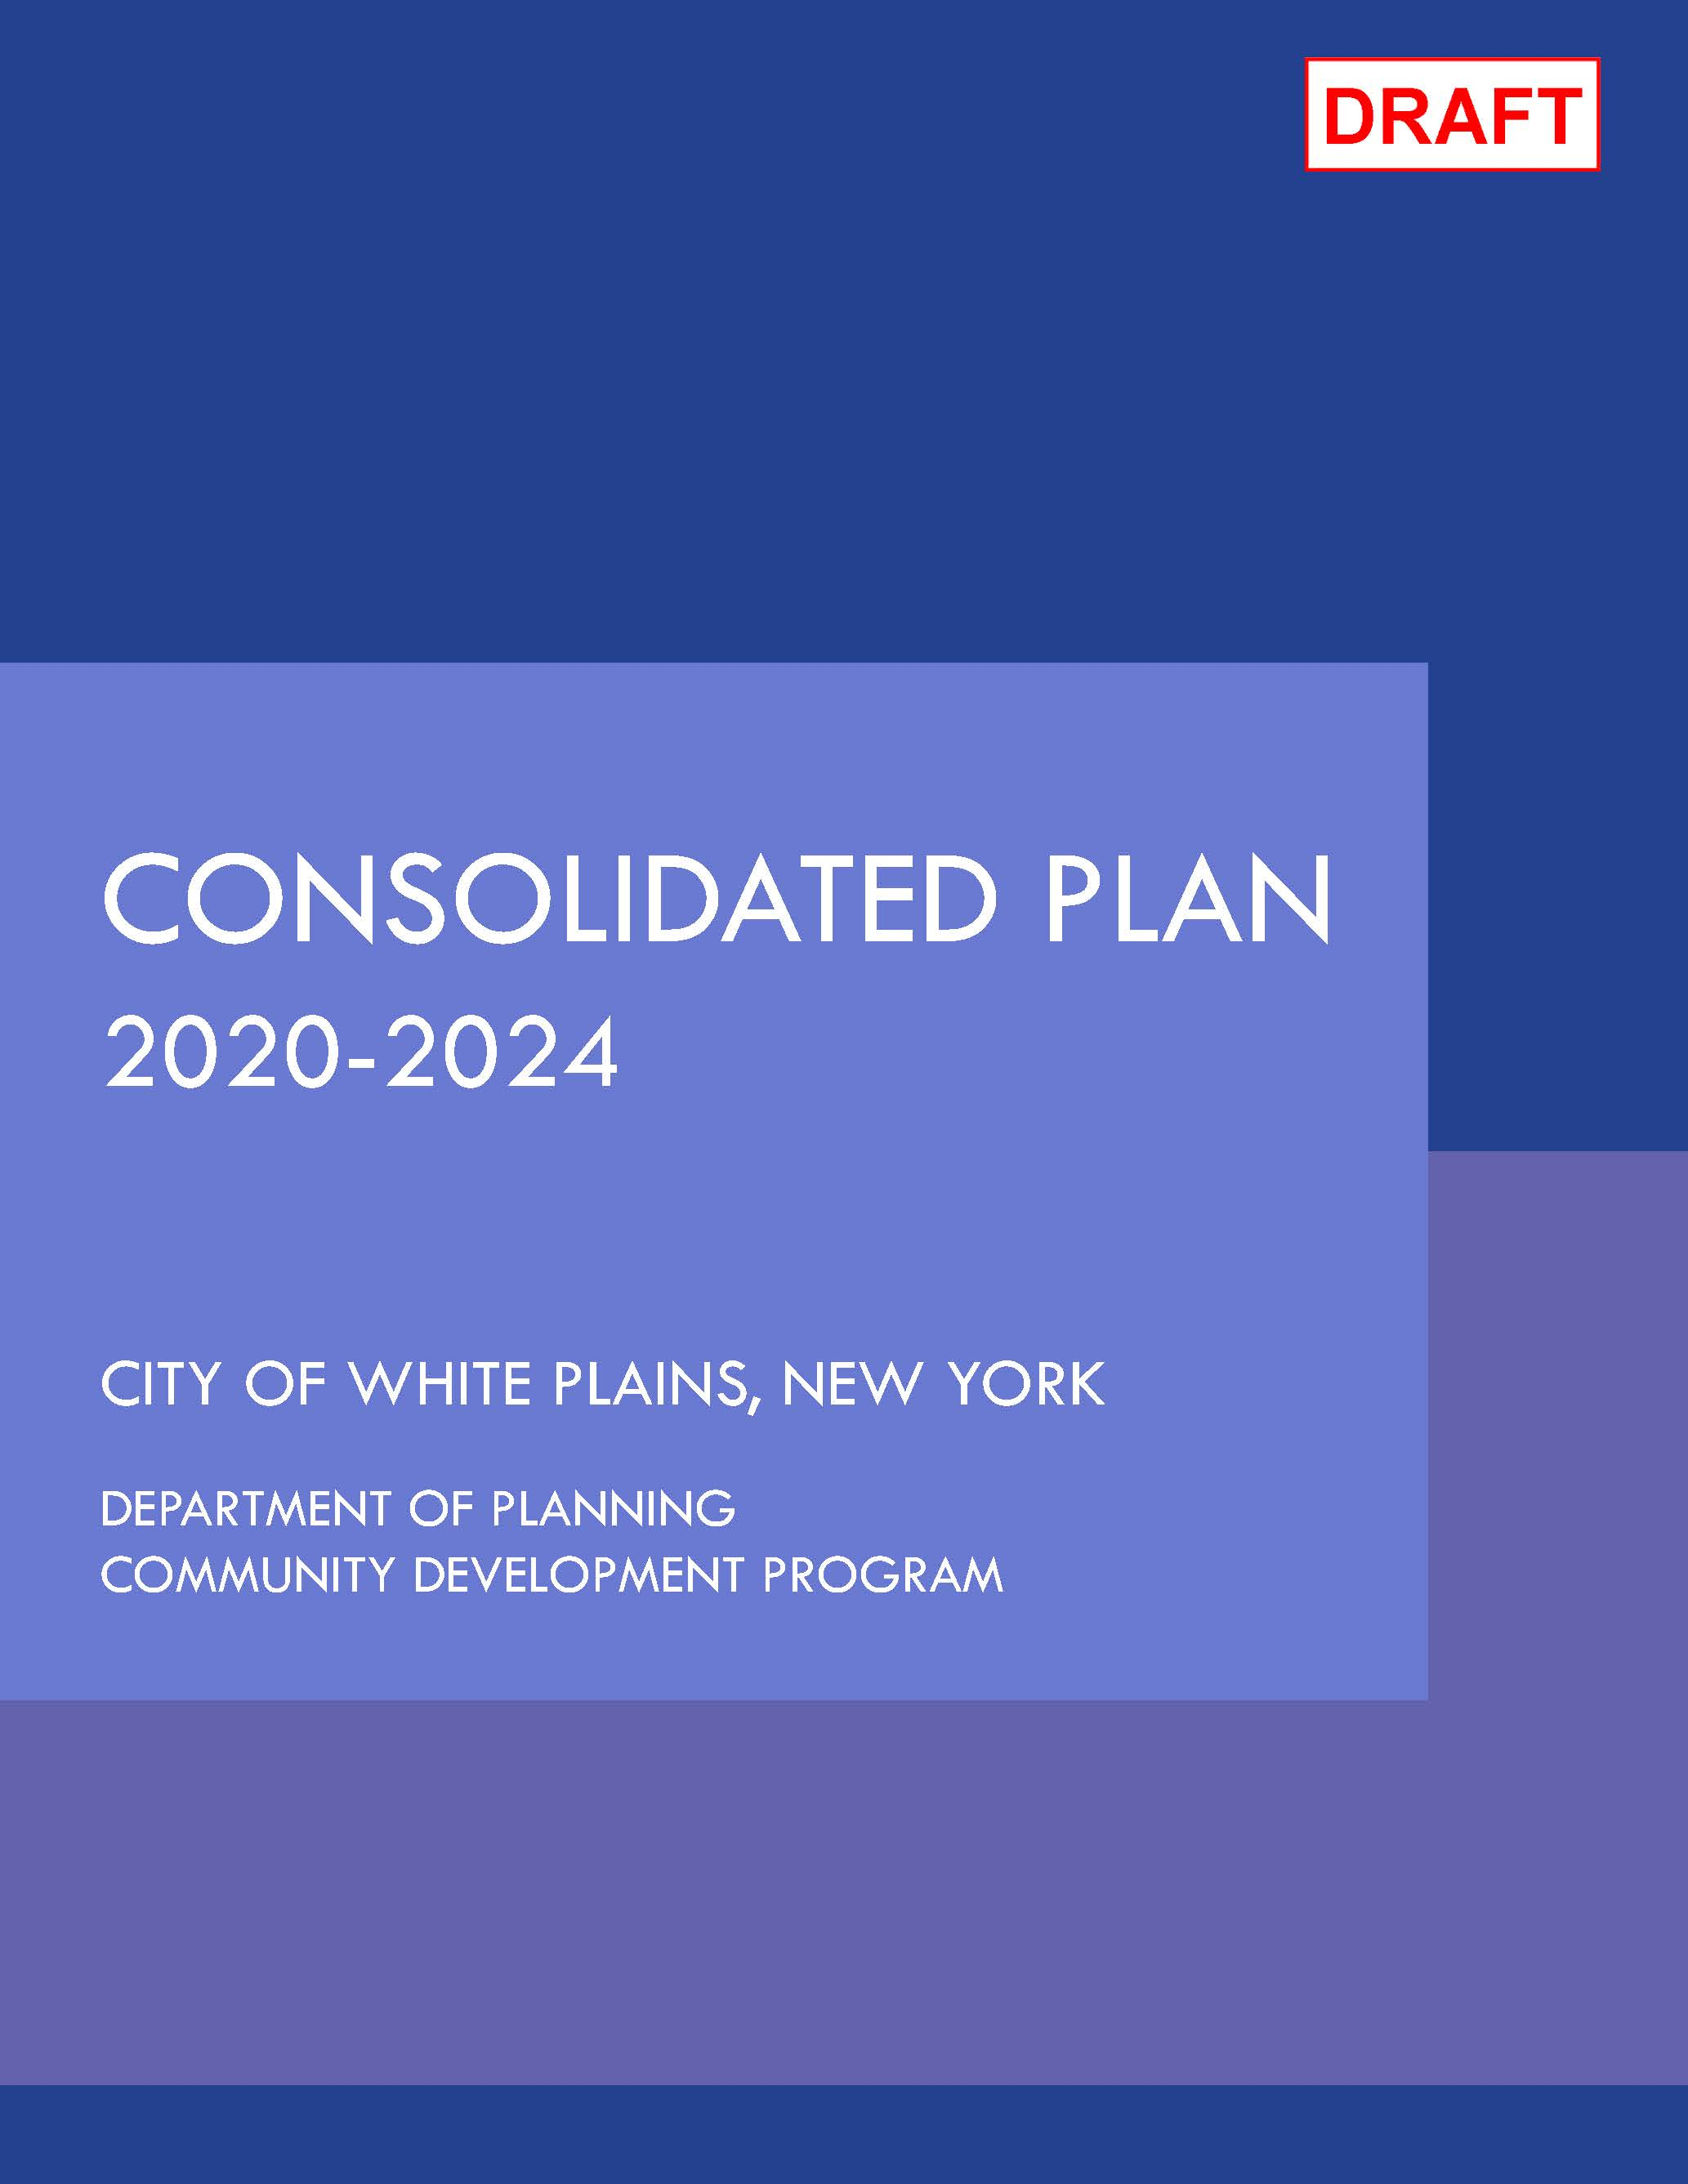 DRAFT 20-24 Consolidated Plan